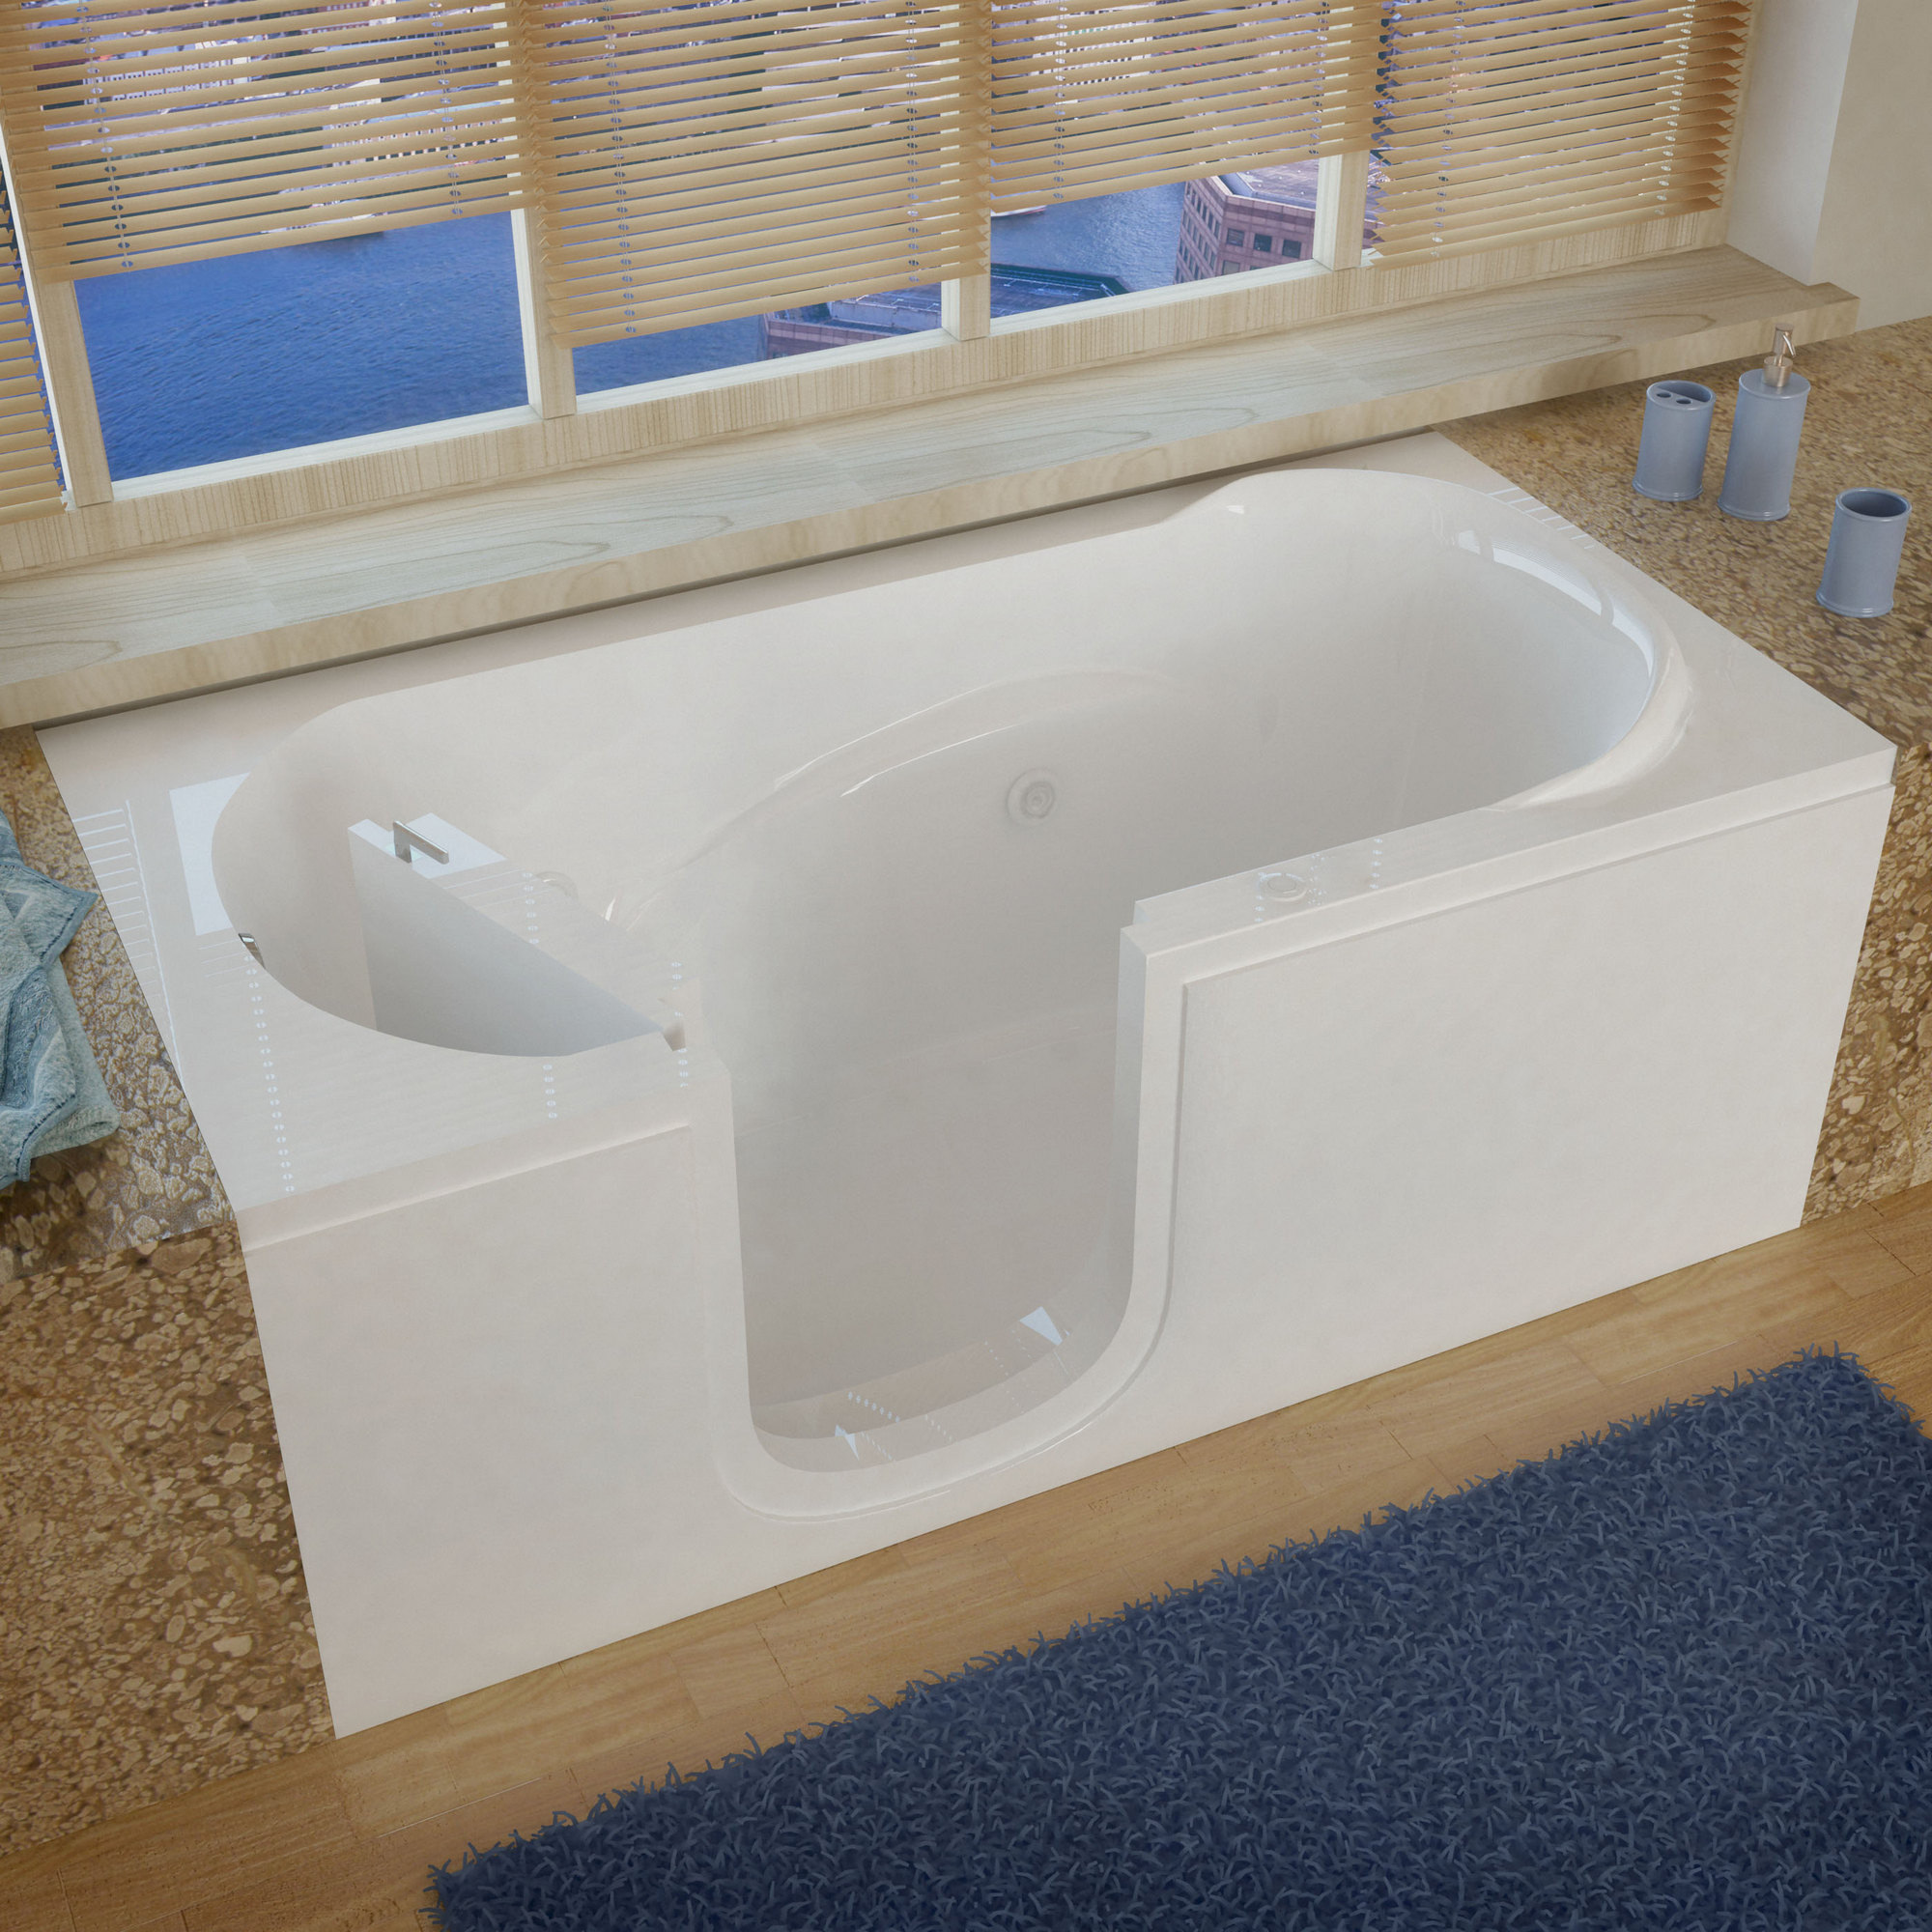 MediTub 3060SILWH Step-In Left Drain White Whirlpool Jetted Step-In Bathtub